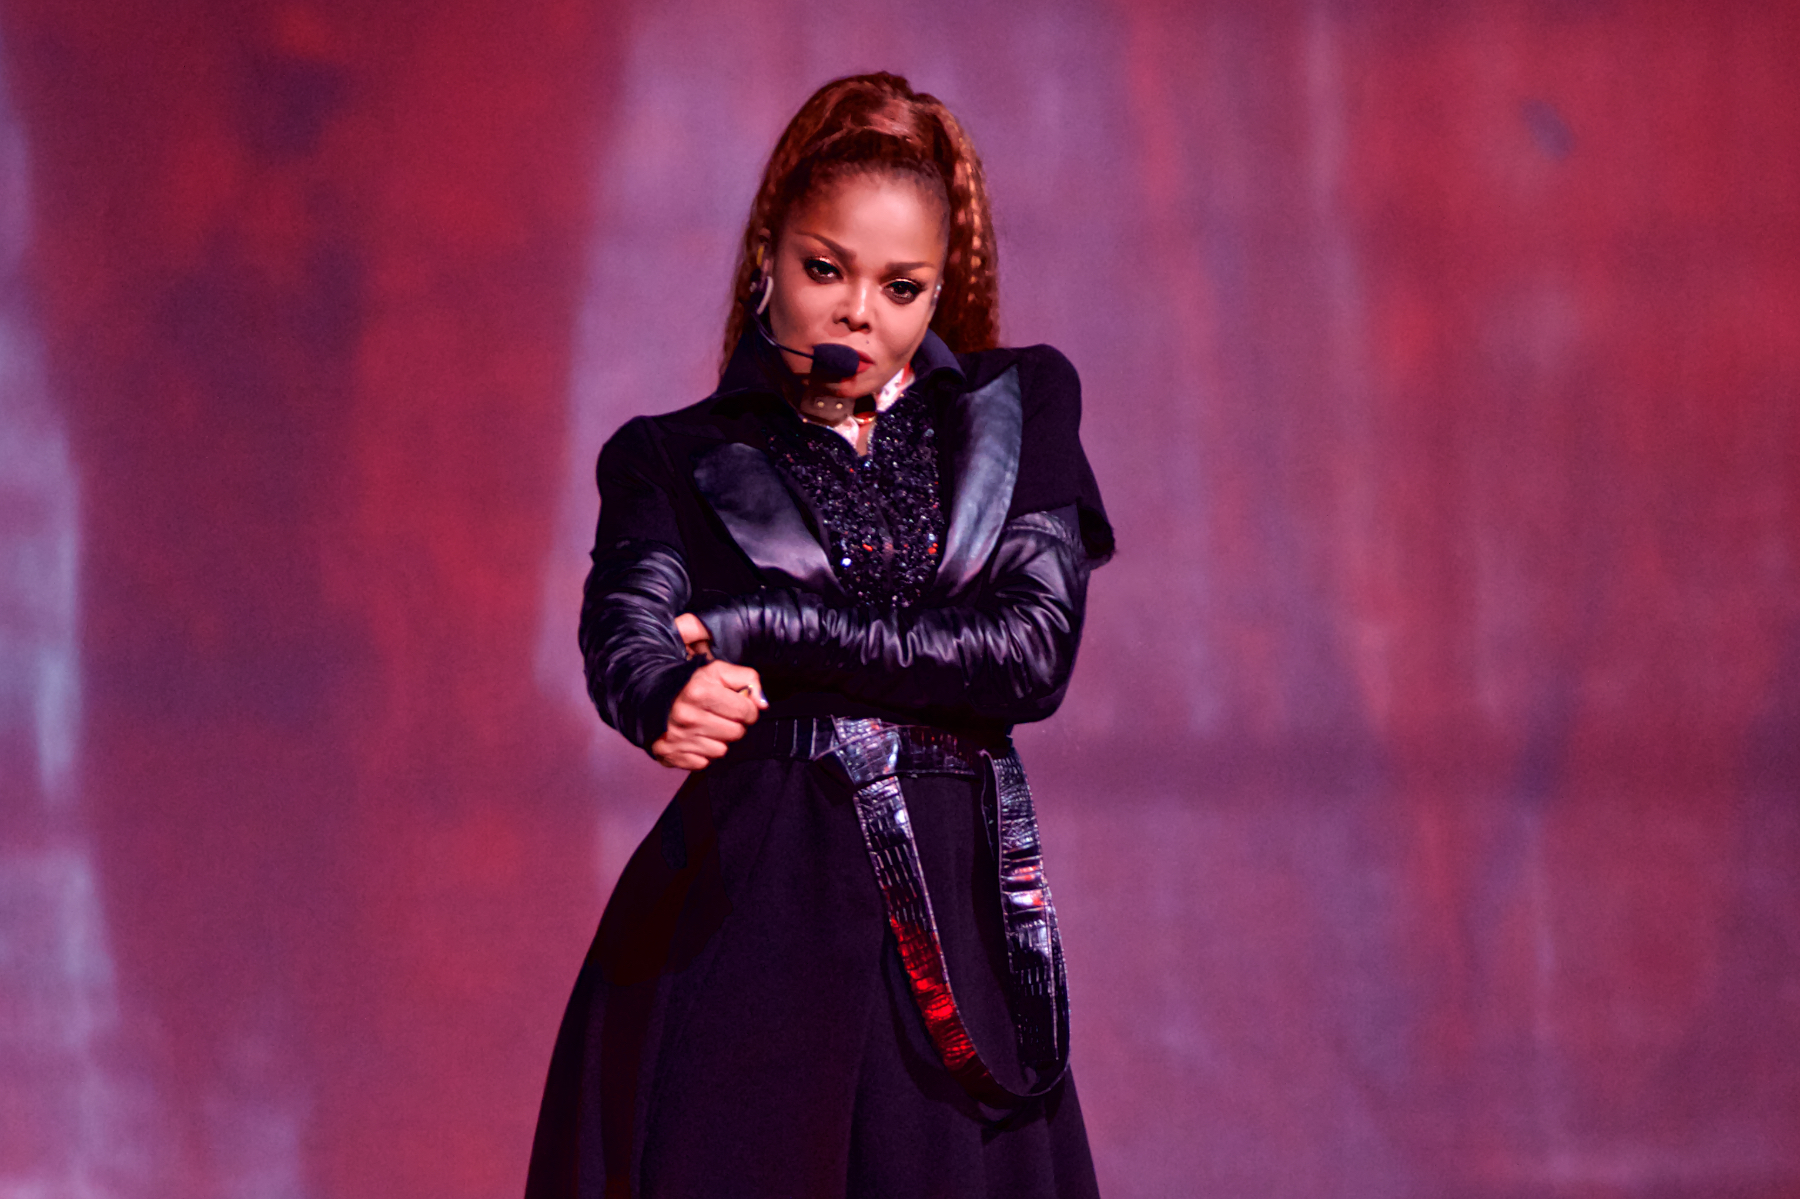 Janet Jackson State of the World Tour Wells Fargo Center Philadelphia, Pa November 13, 2017  DerekBrad.com